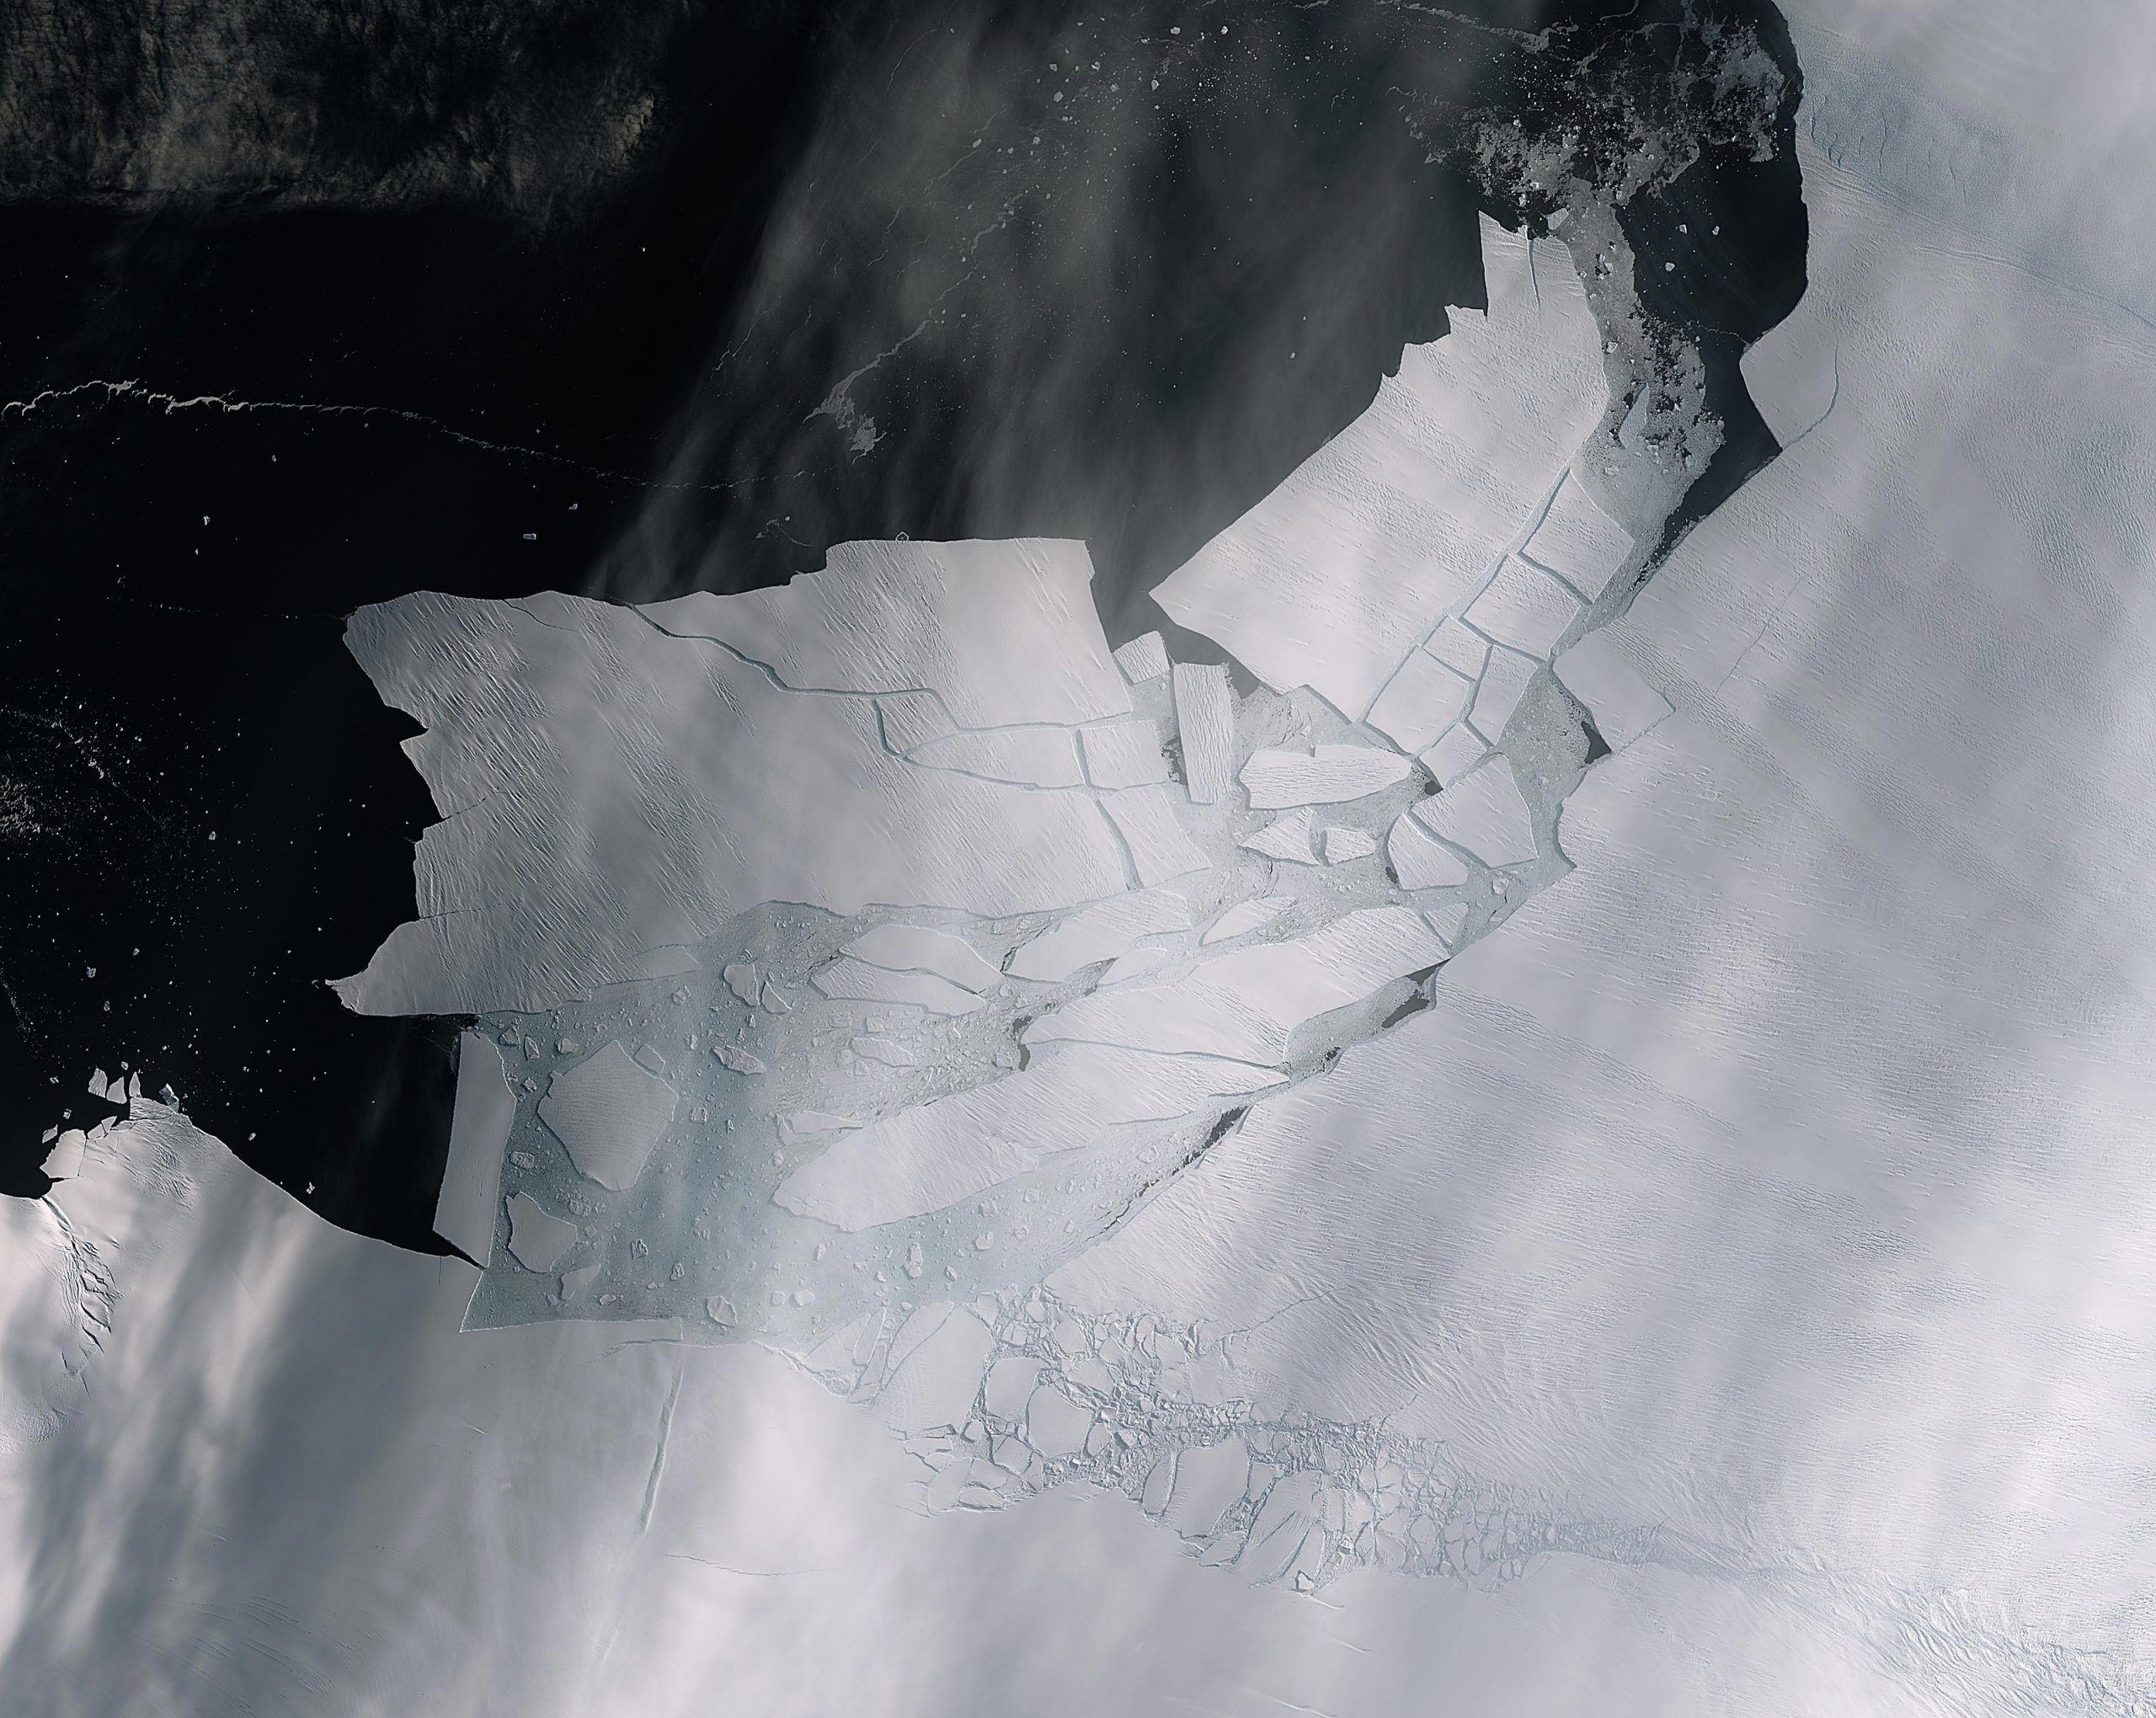 Satellite images show Pine Island Glacier spawning iceberg